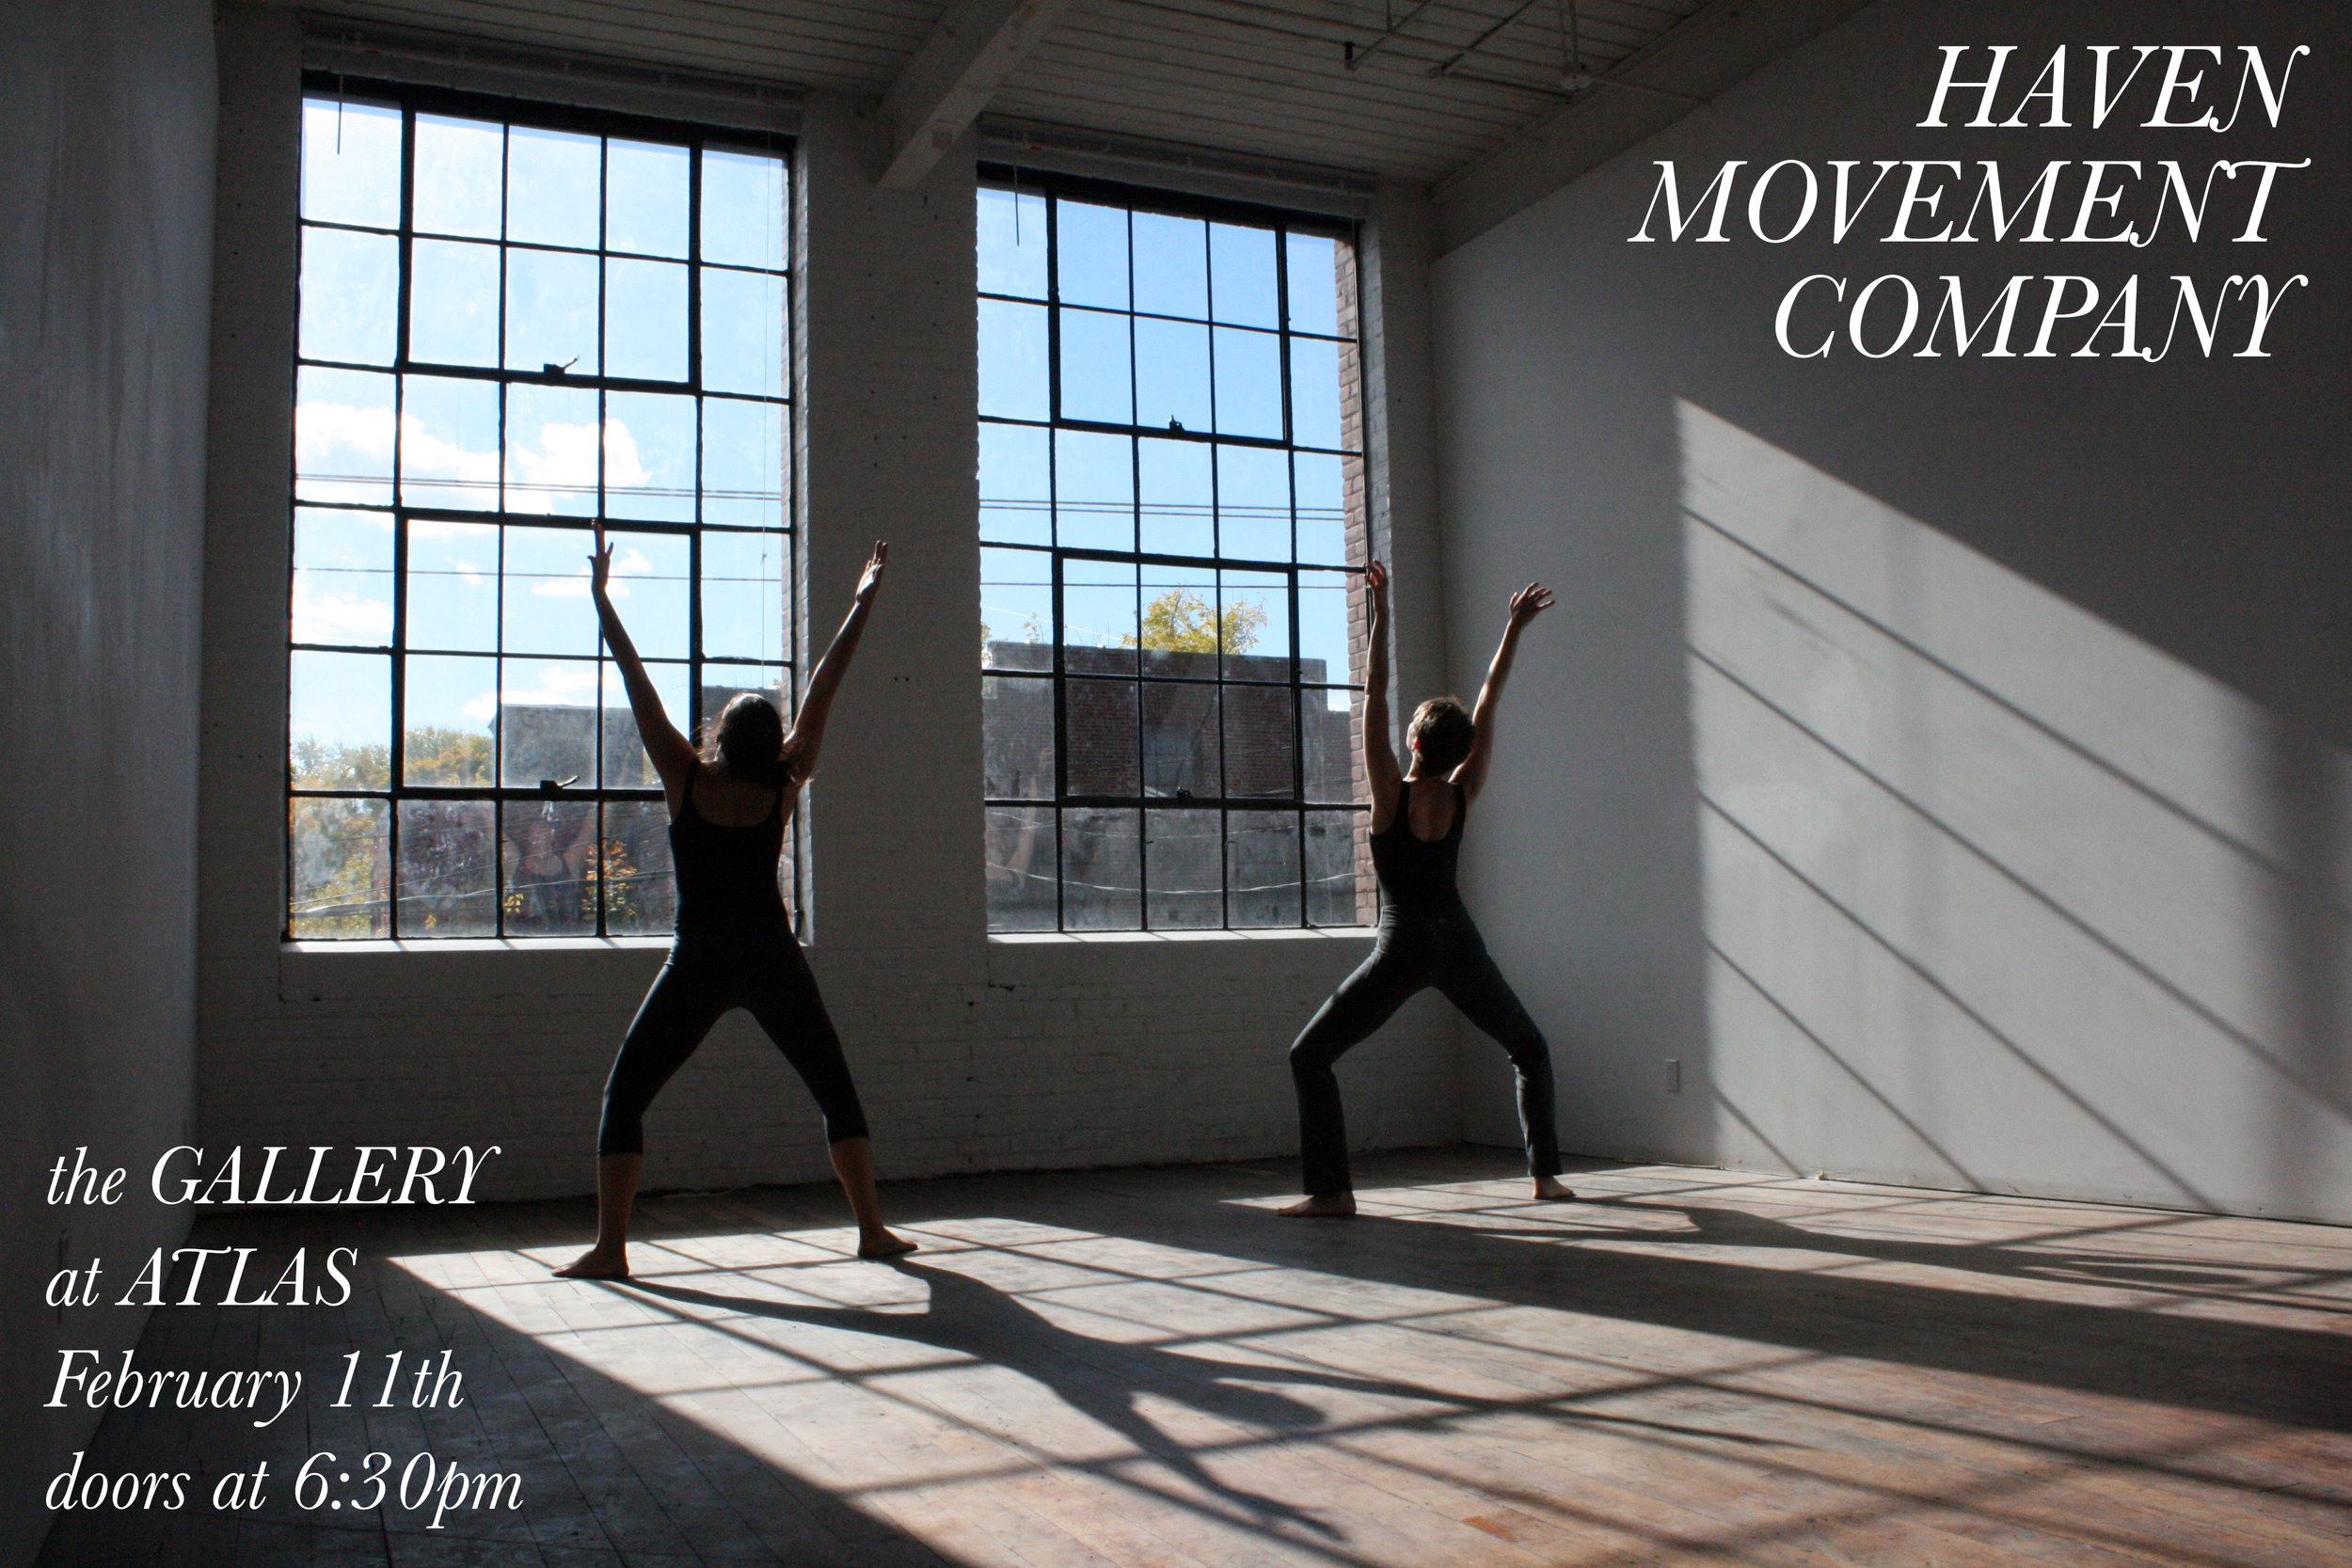 introducing haven movement company modern dance atlas studios newburgh